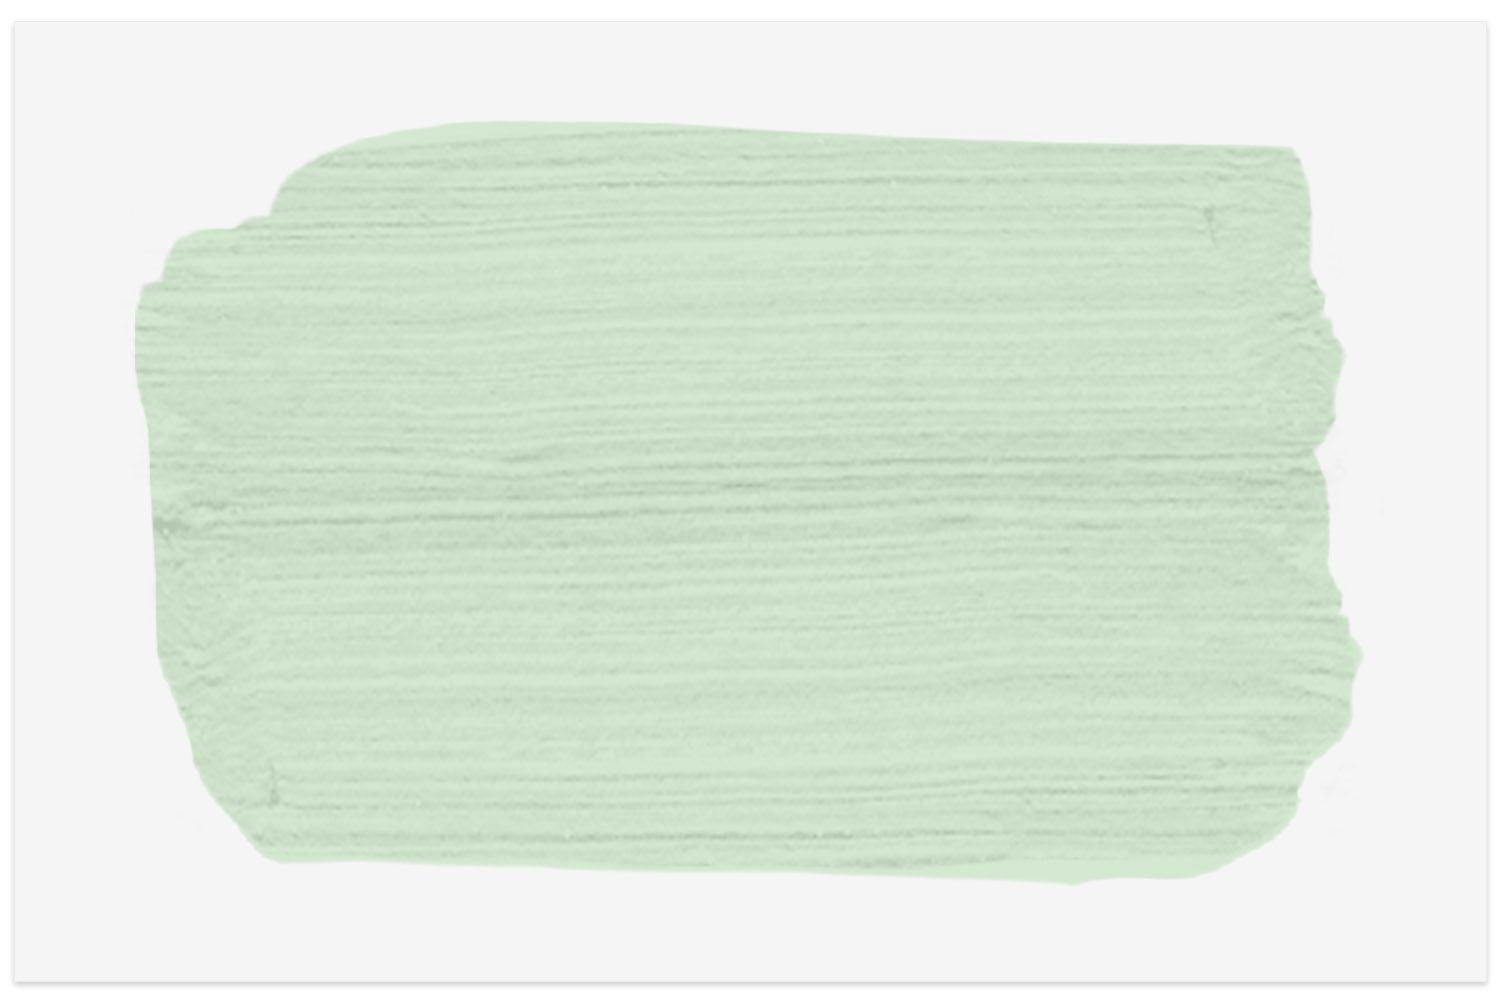 Pale Tidepool paint swatch from Valspar